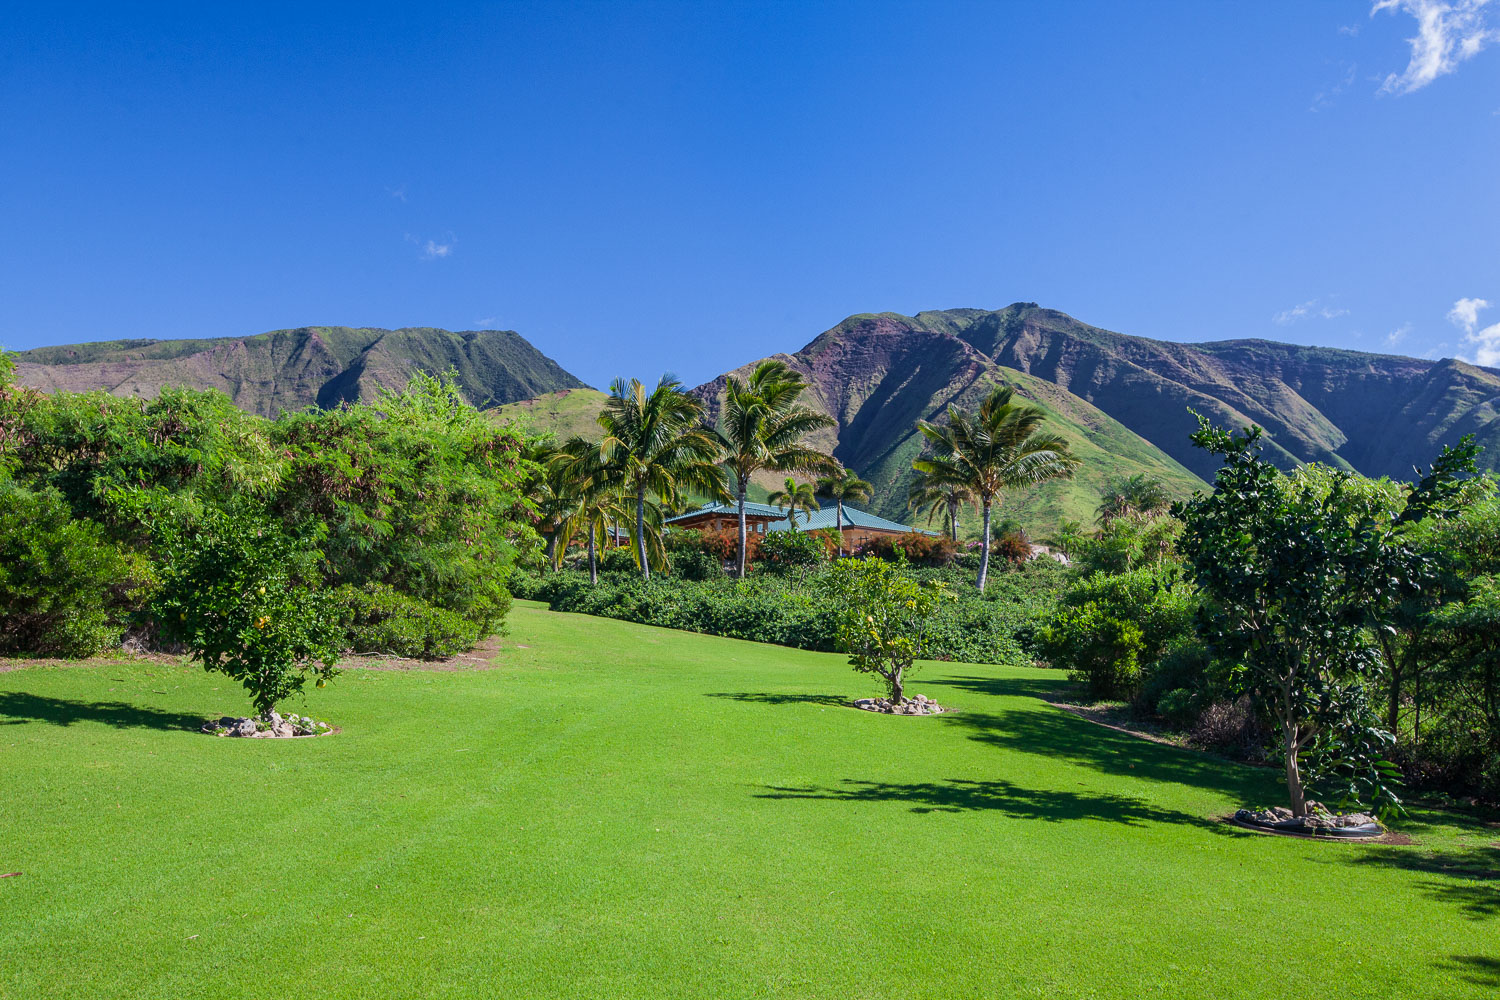 beautifully-maintained-maui-property-chris-curtis-landscapes.jpg